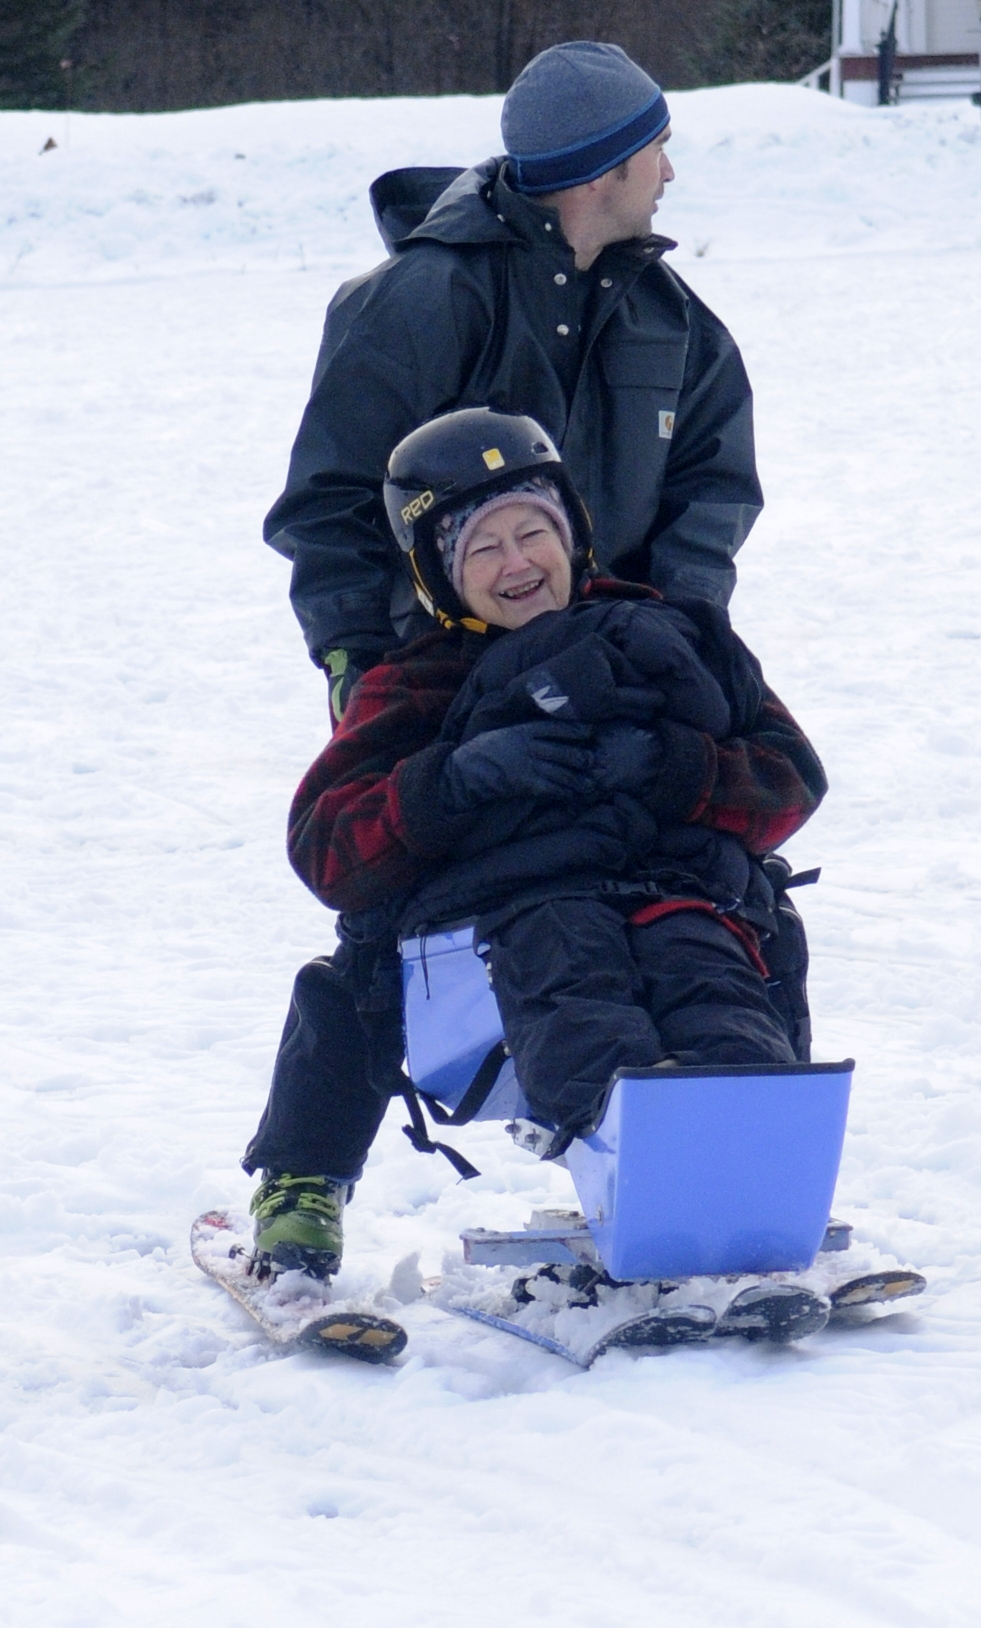 Adaptive skiing offers freedom for young and old